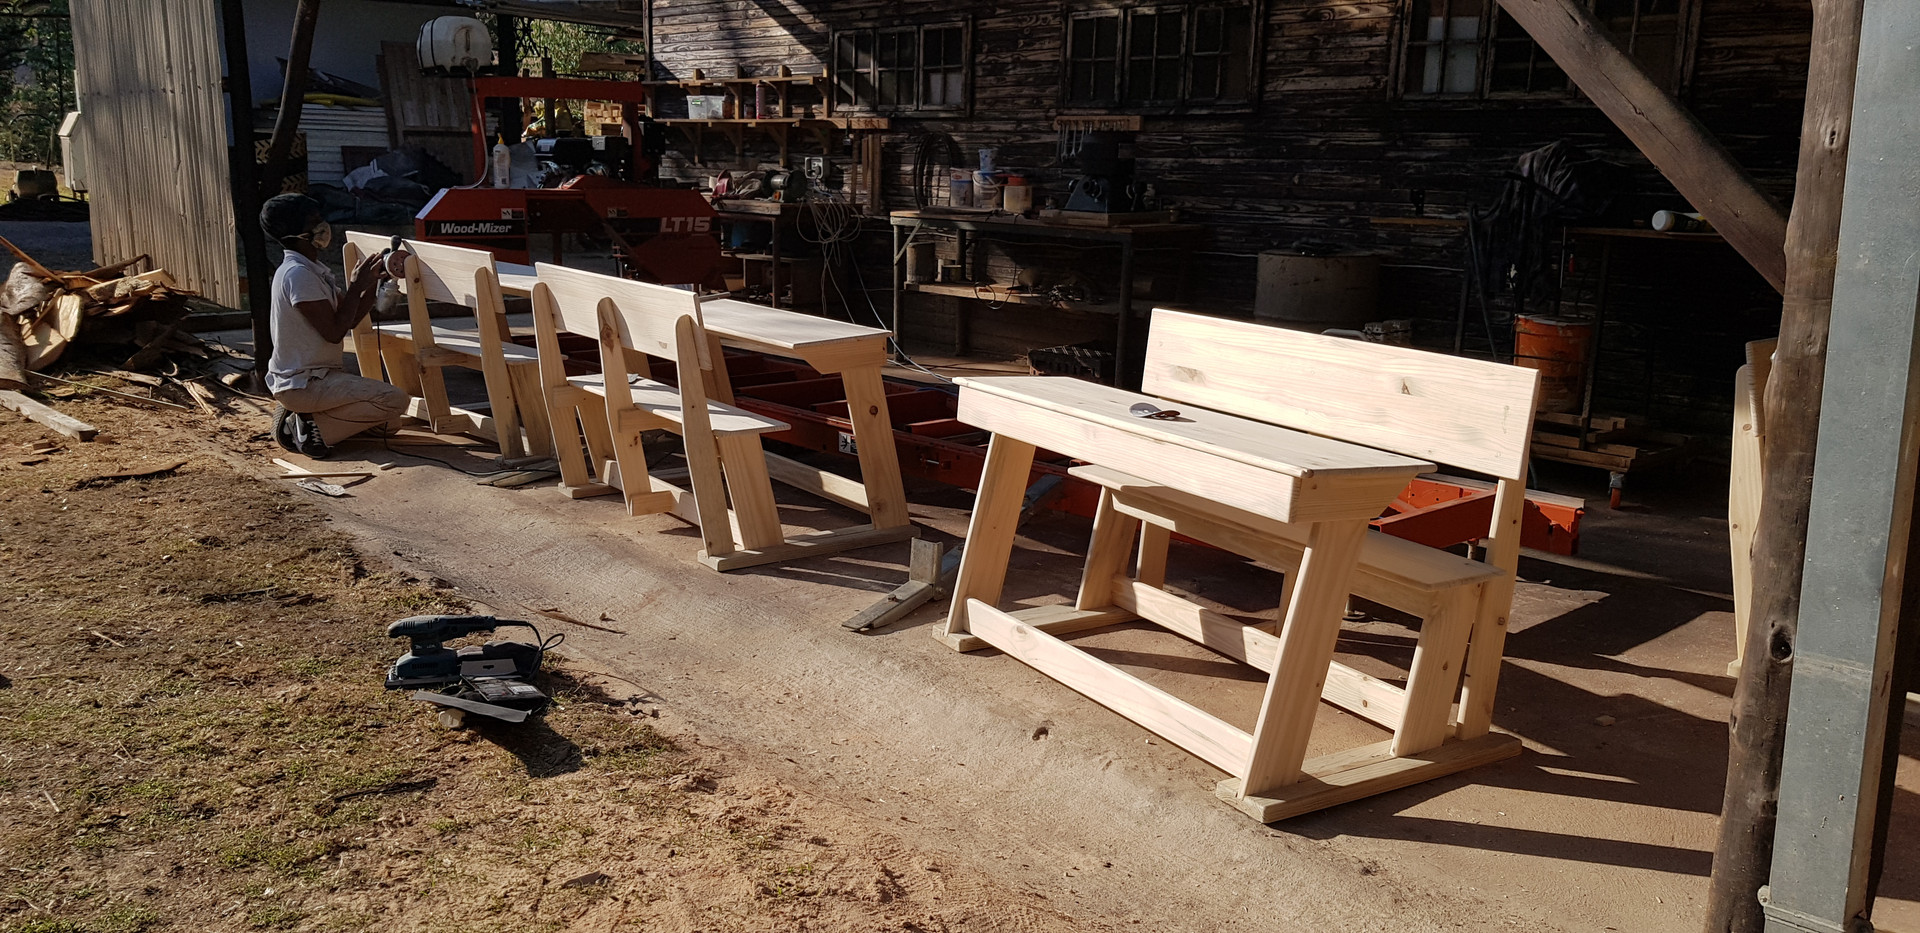 Desks waiting to be finished